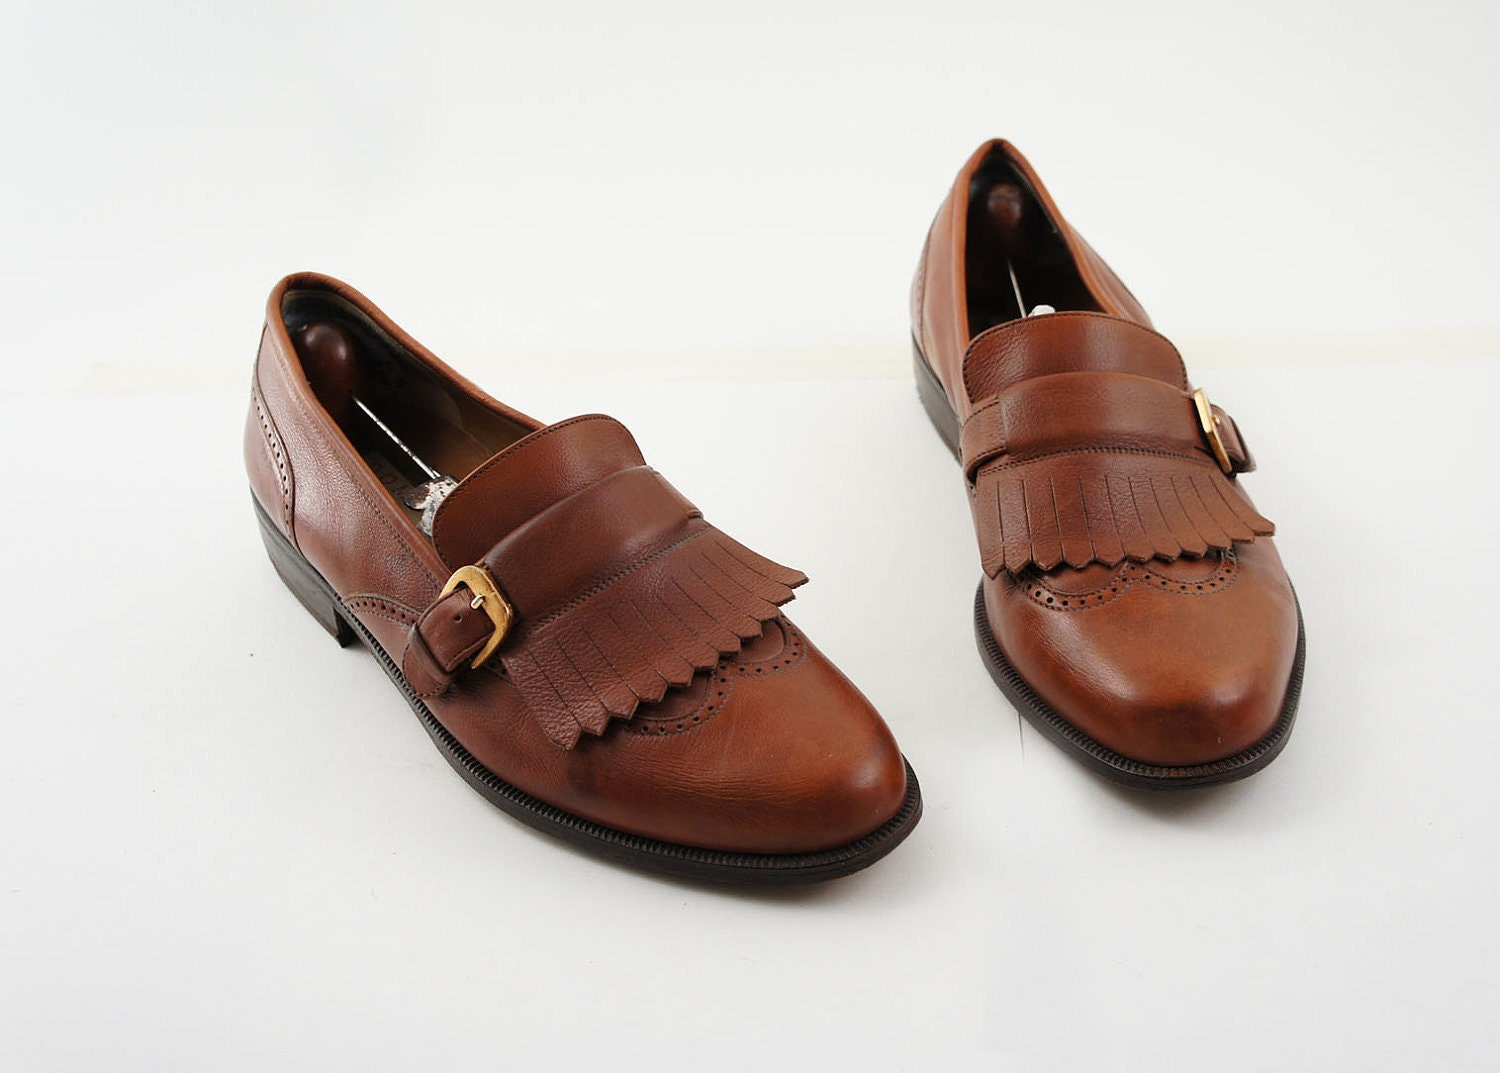 s preppy loafer dress shoes in a brown leather with